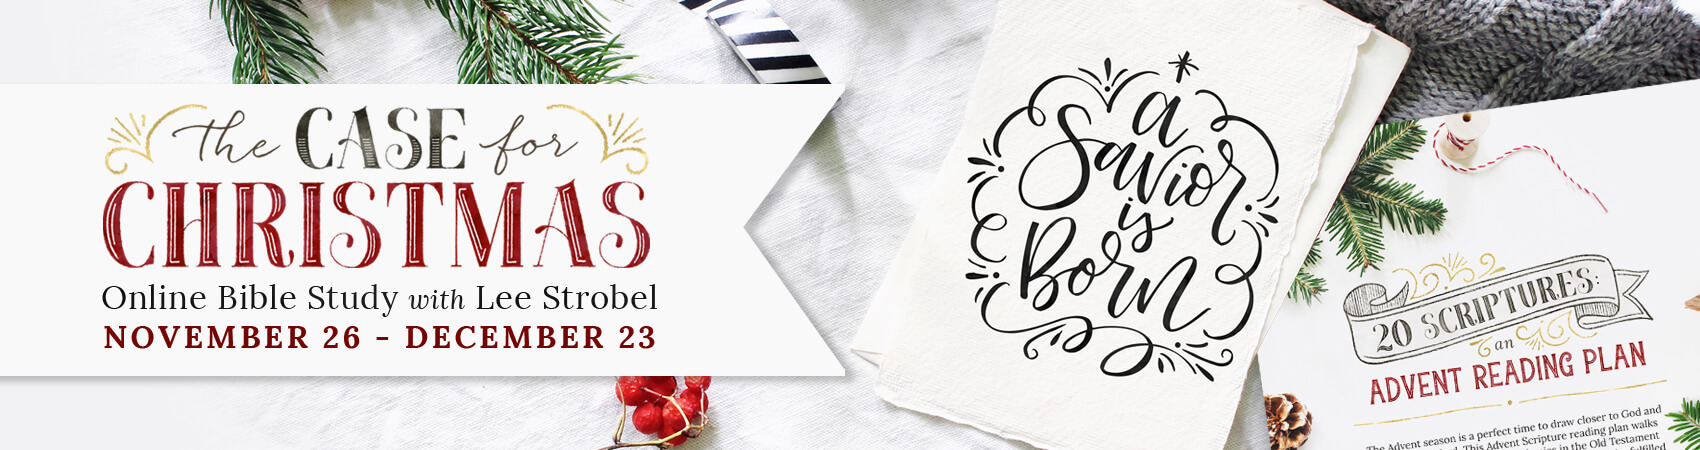 youre invited the case for christmas online bible study - The Case For Christmas